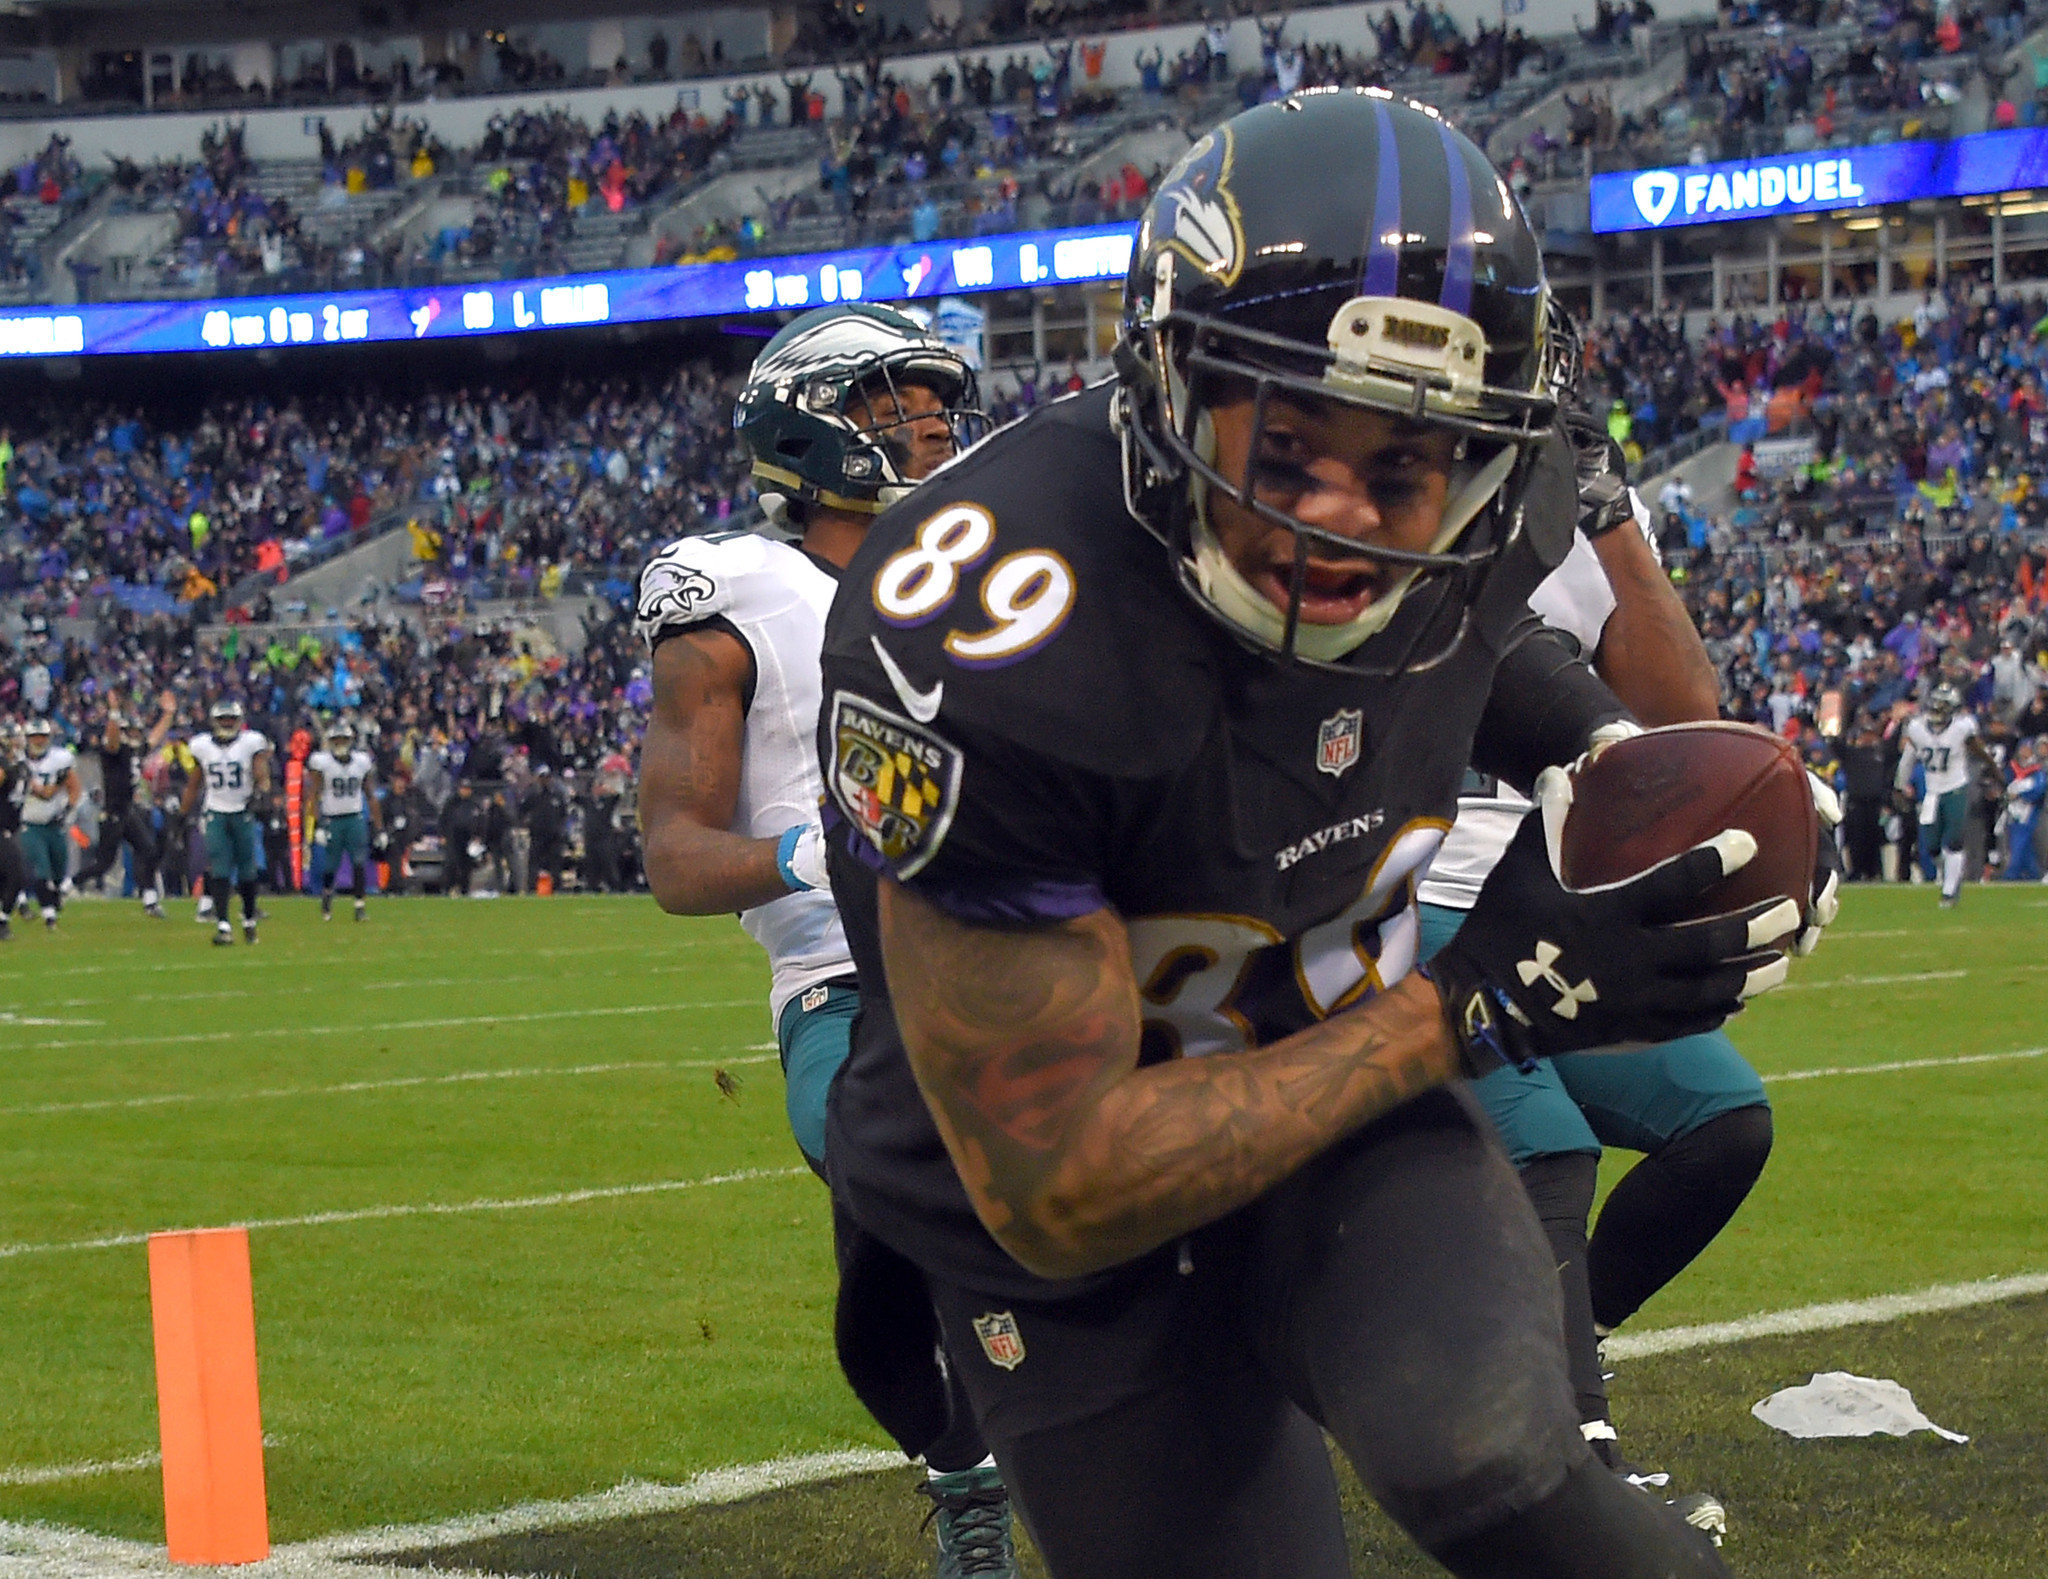 Bal-steve-smith-sr-staying-away-from-training-to-avoid-thoughts-of-a-comeback-20170220